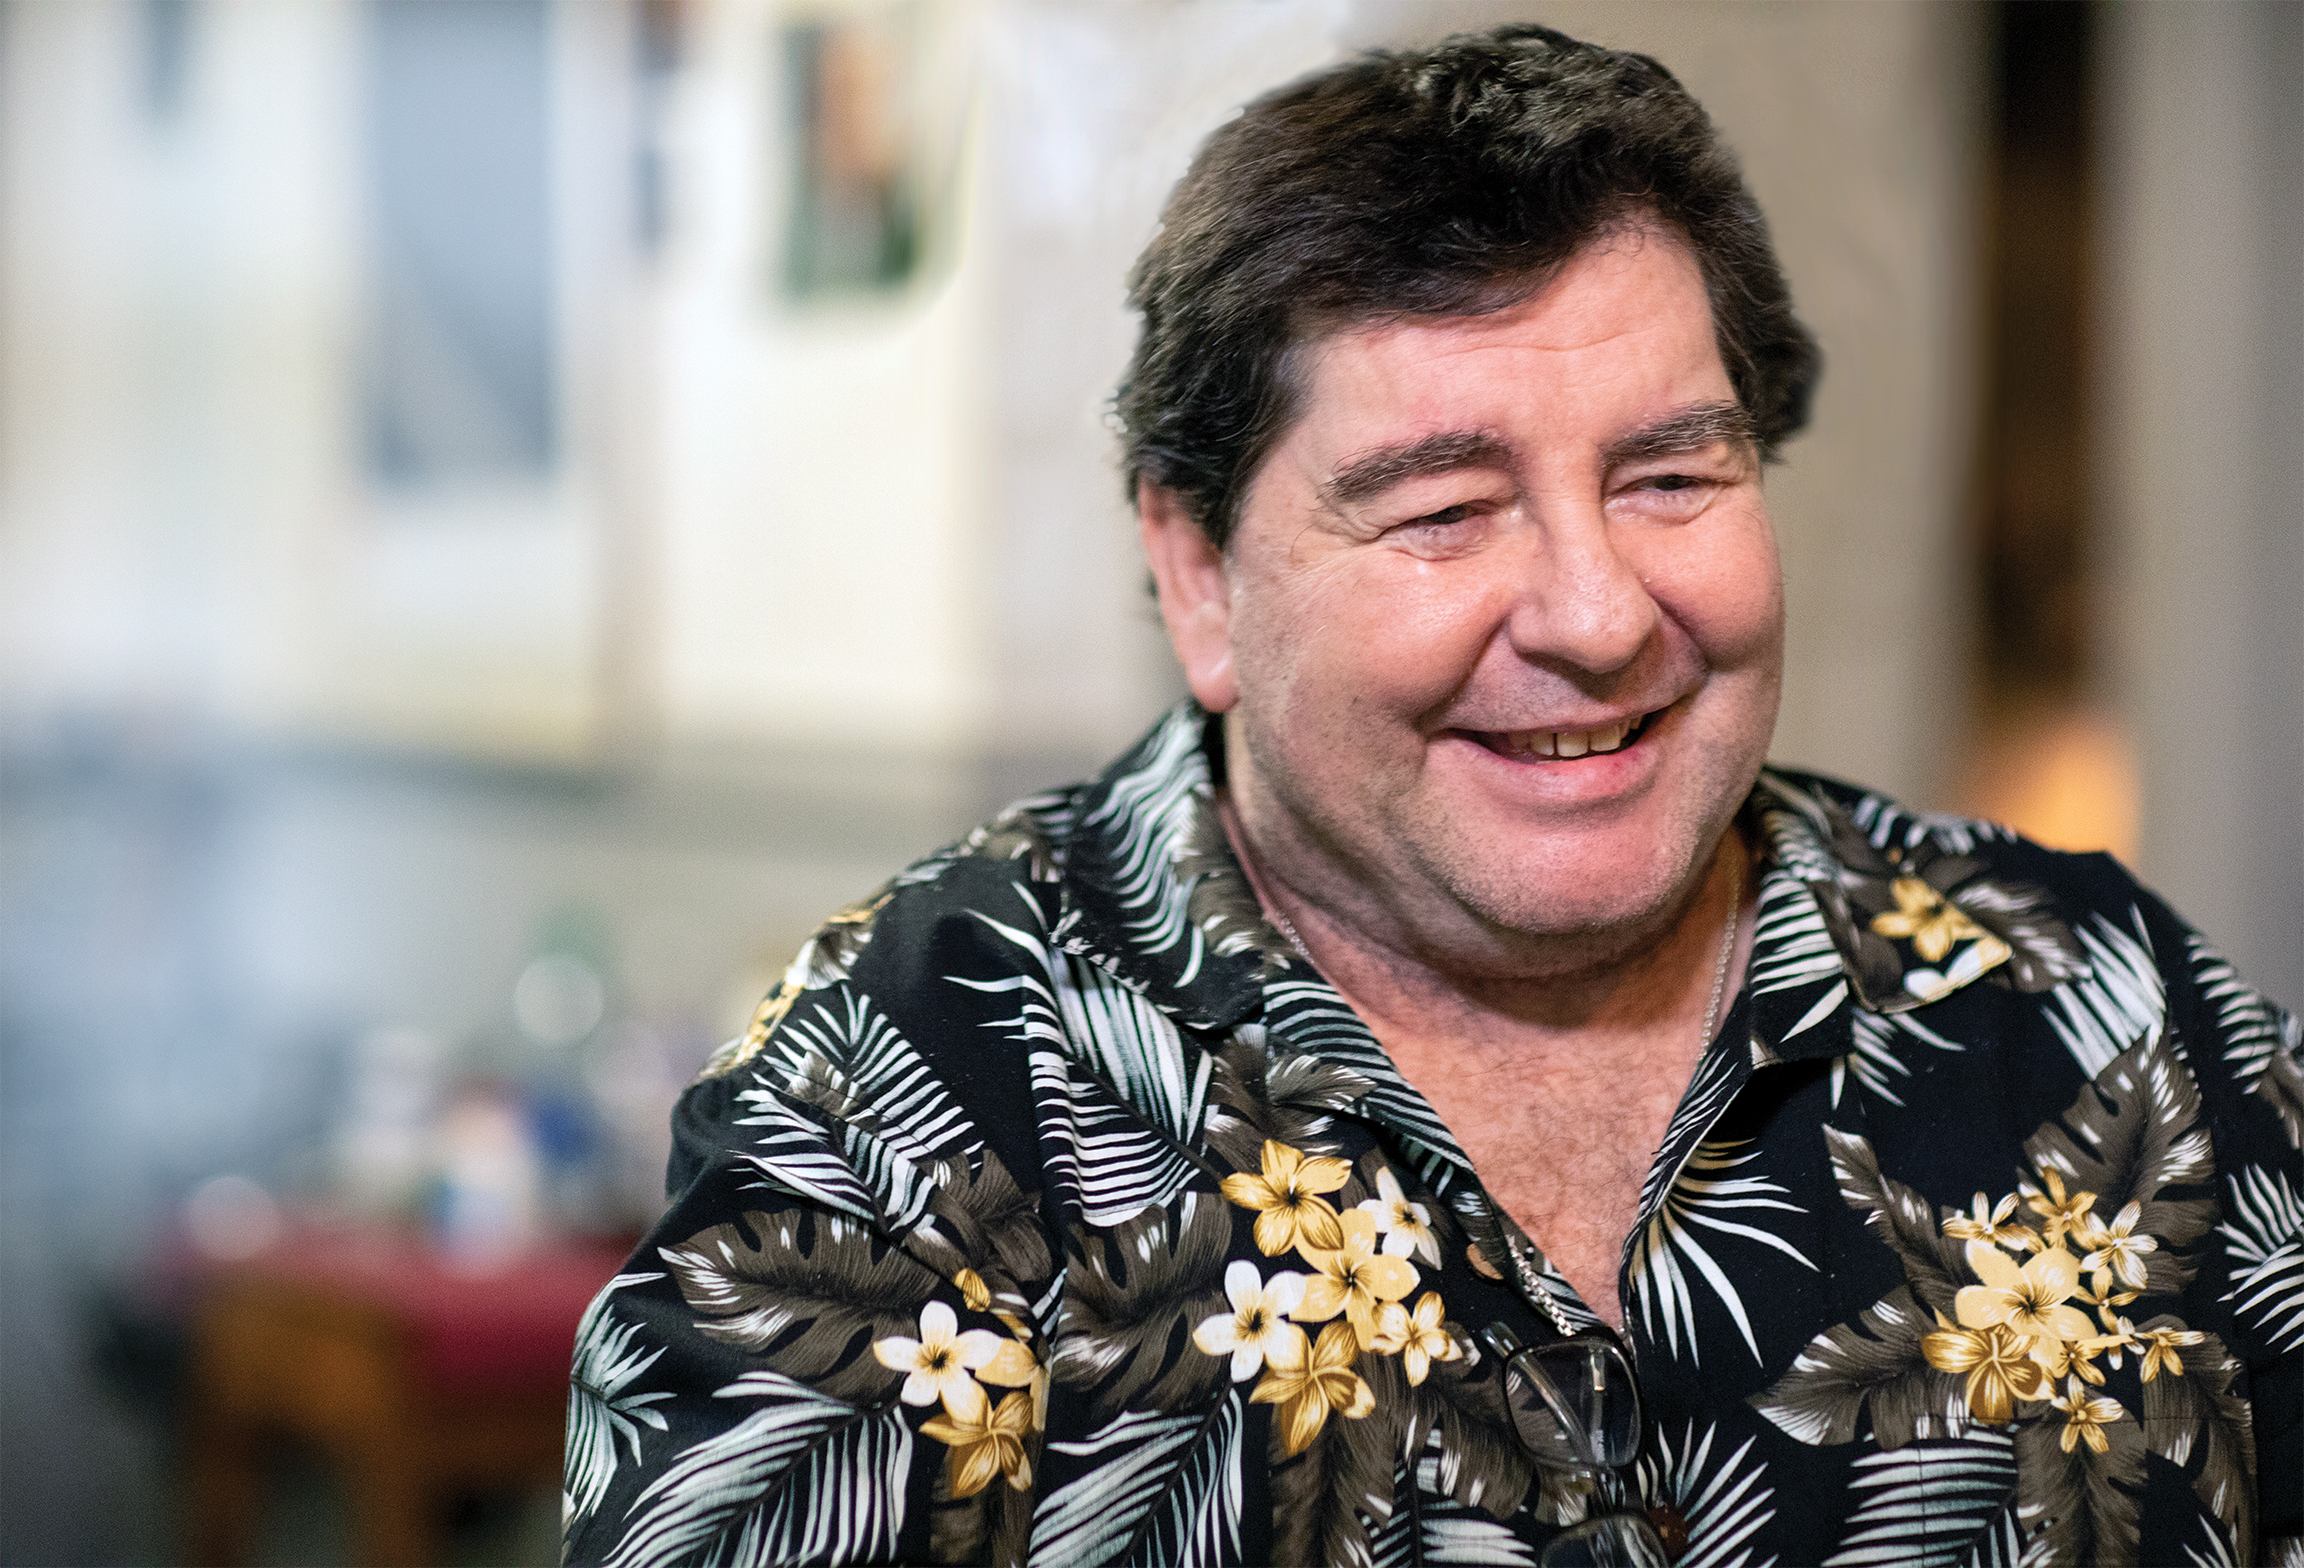 A smiling Eddie Roebuck wearing a tropical print shirt looks away from the camera.